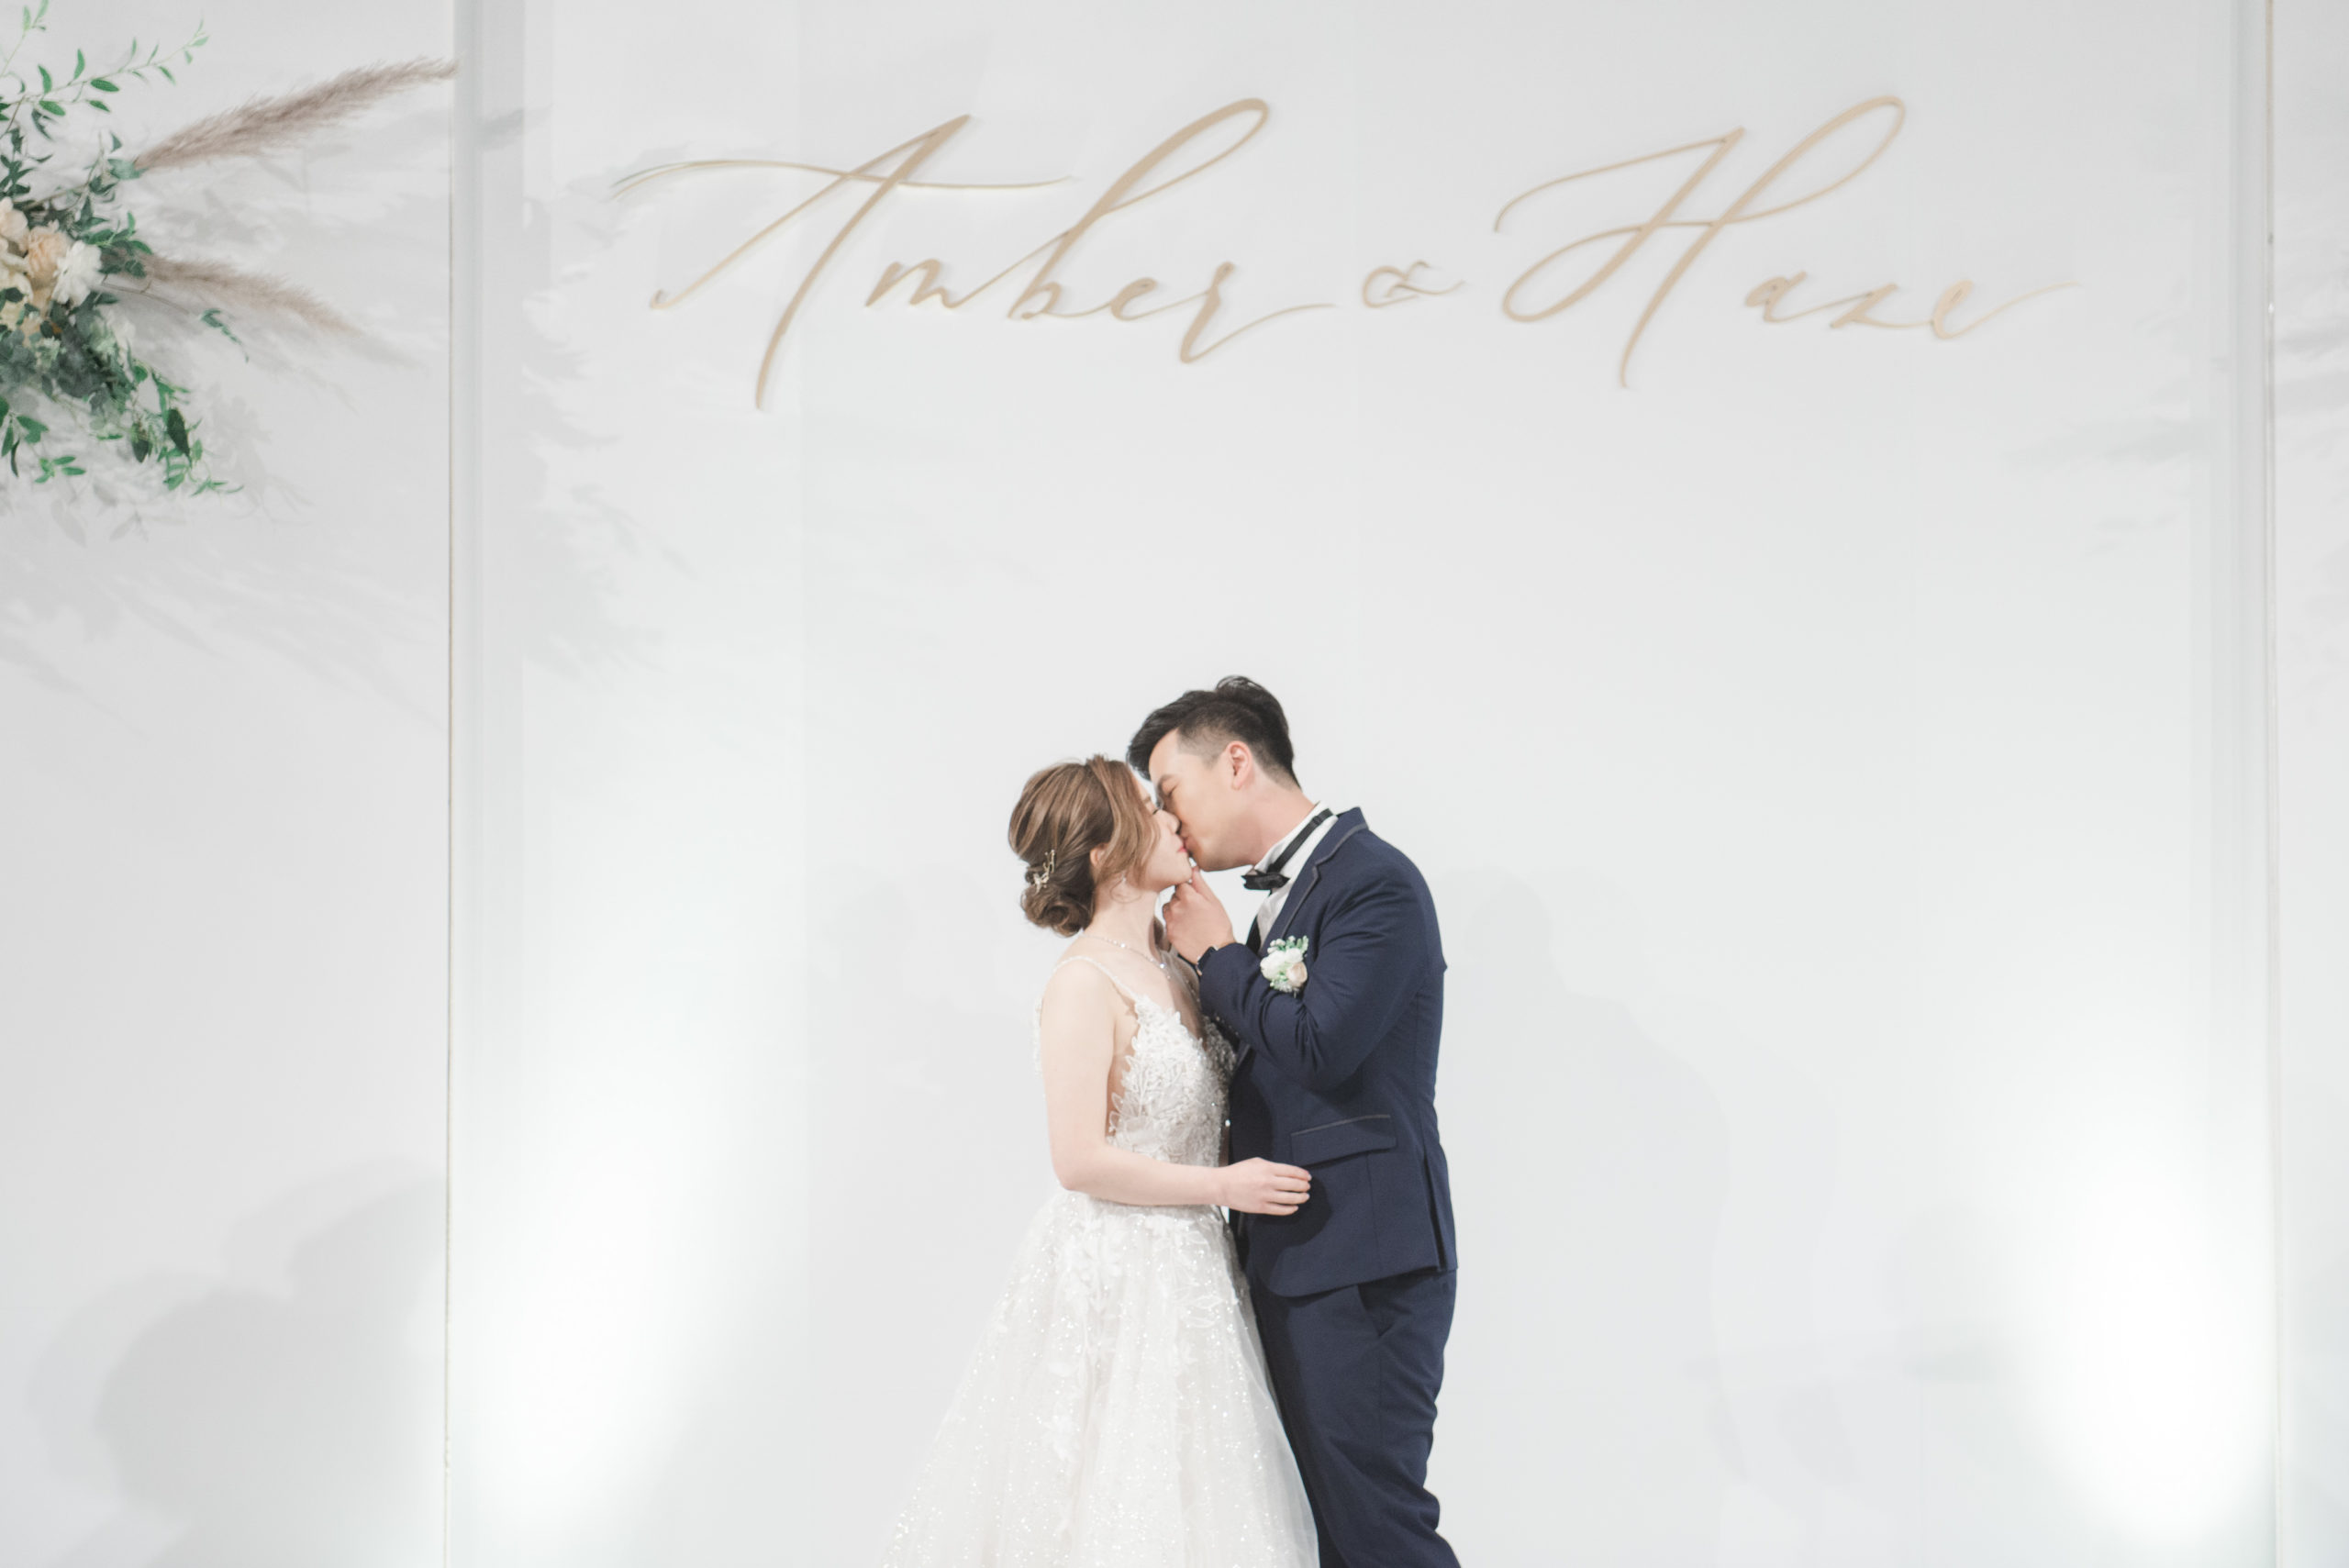 couple kissing in front of the calligraphy wedding backdrop